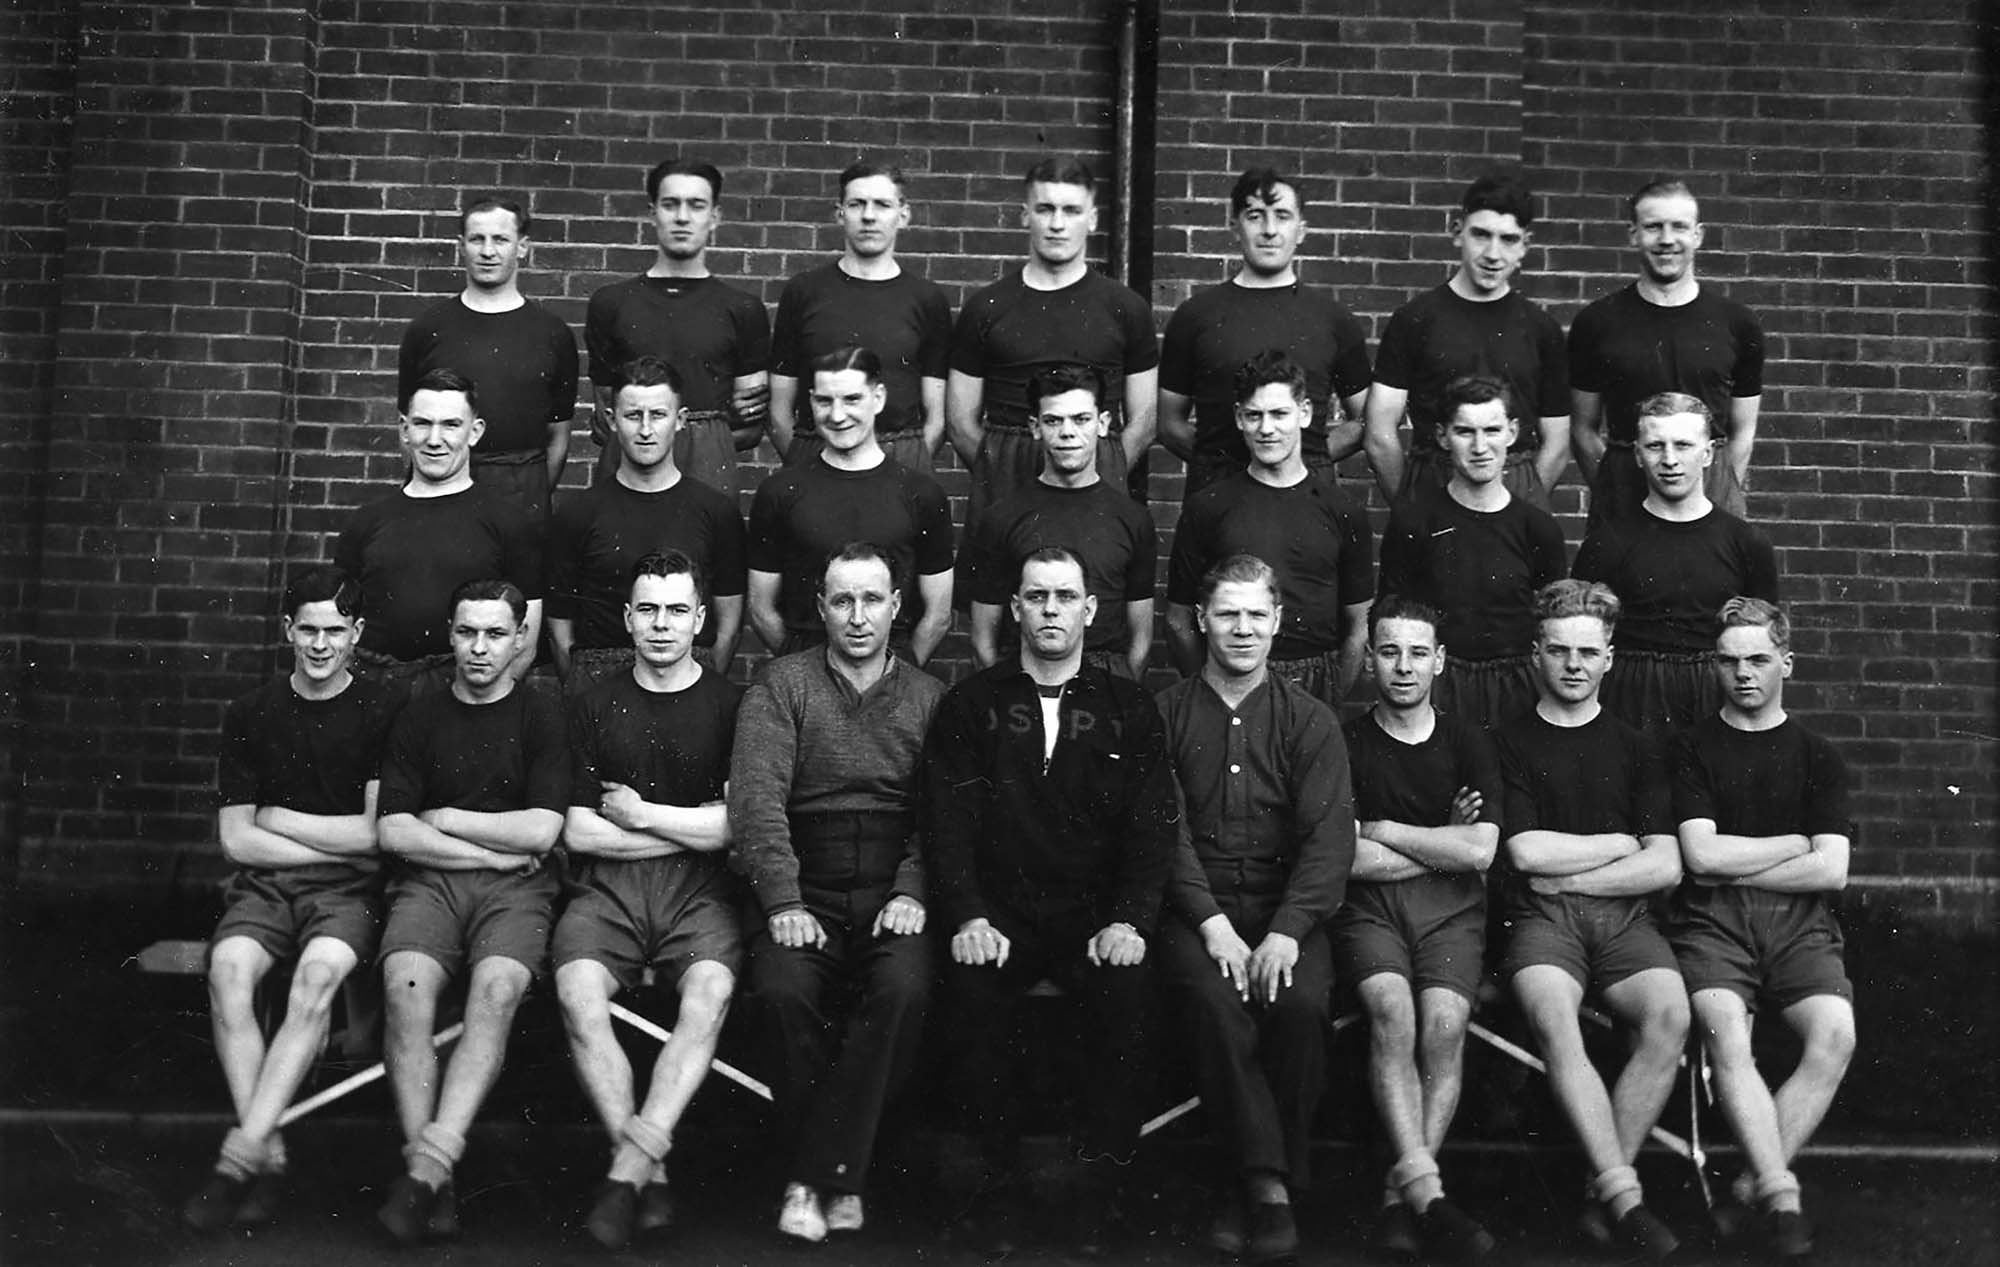 New recruits to Leicestershire Regiment, Glen Parva, November 1939 -